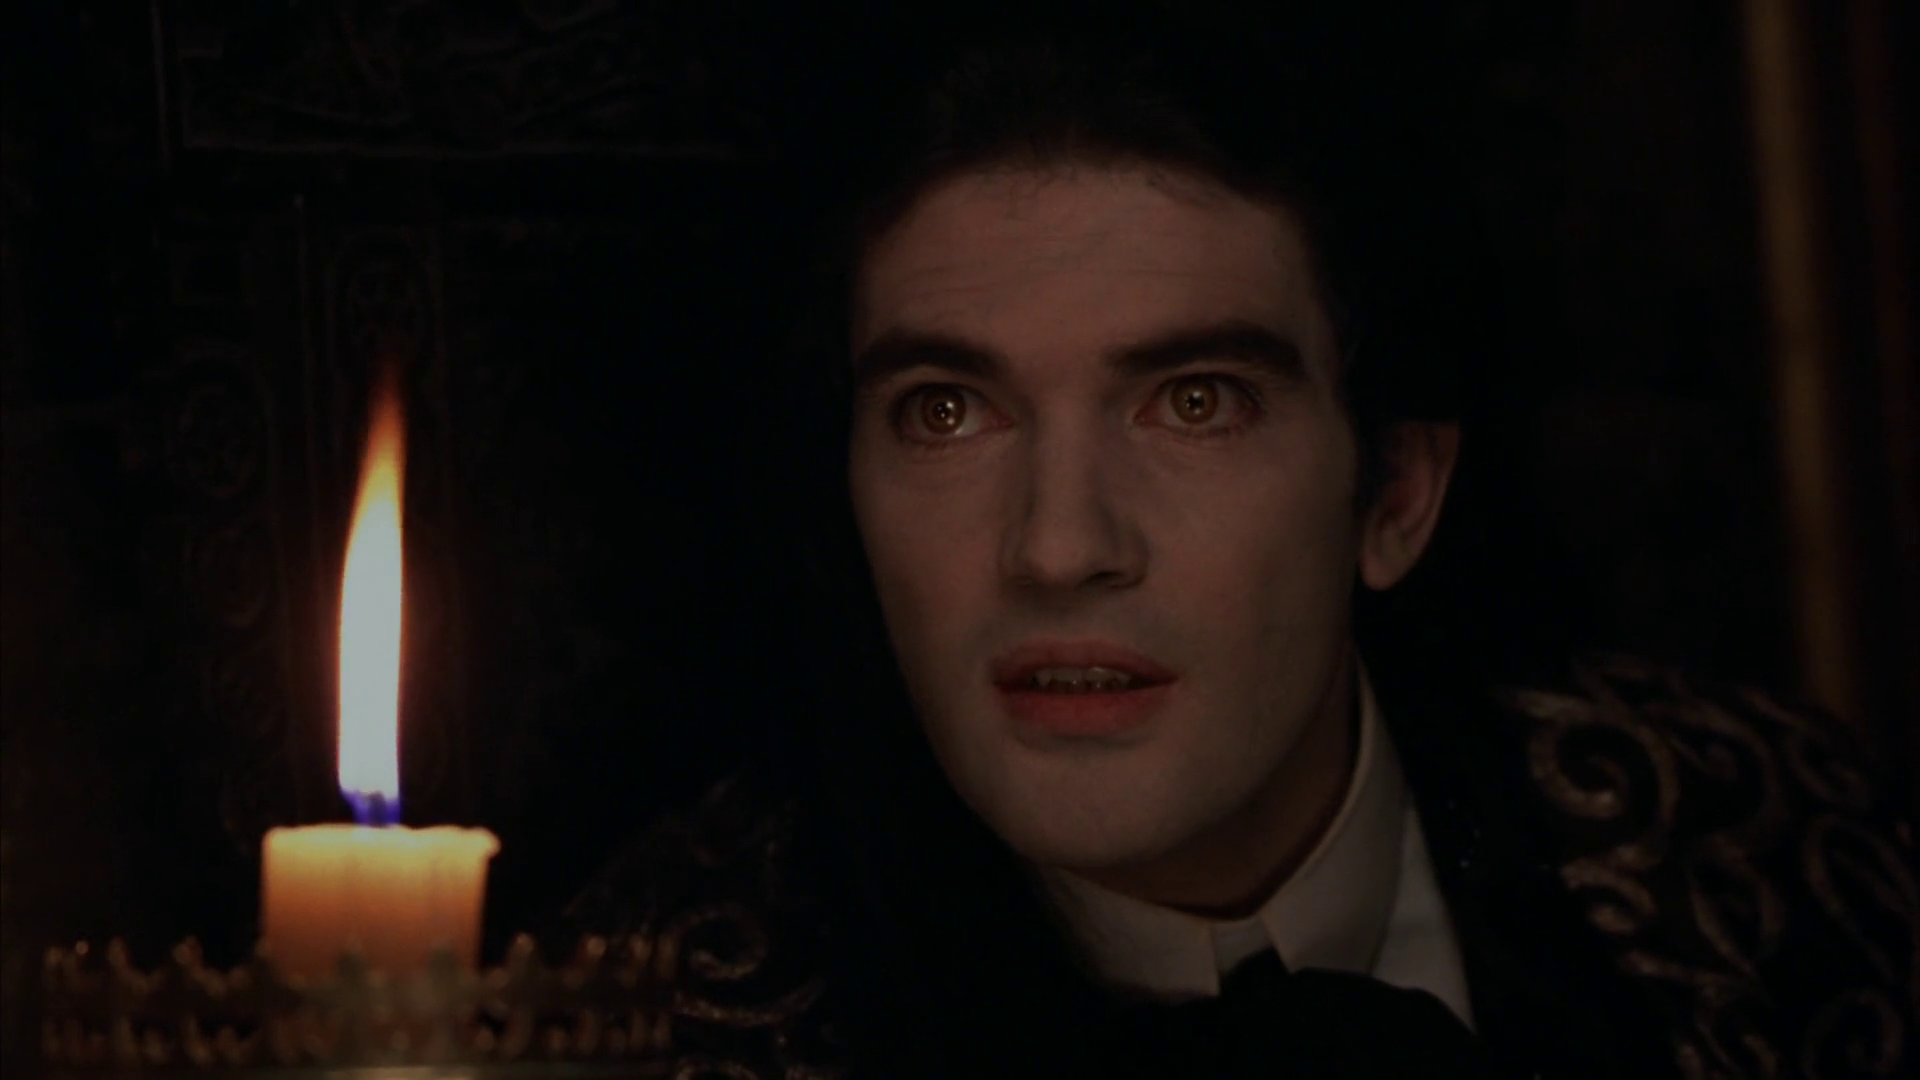 armand the vampire chronicles wiki fandom powered by wikia